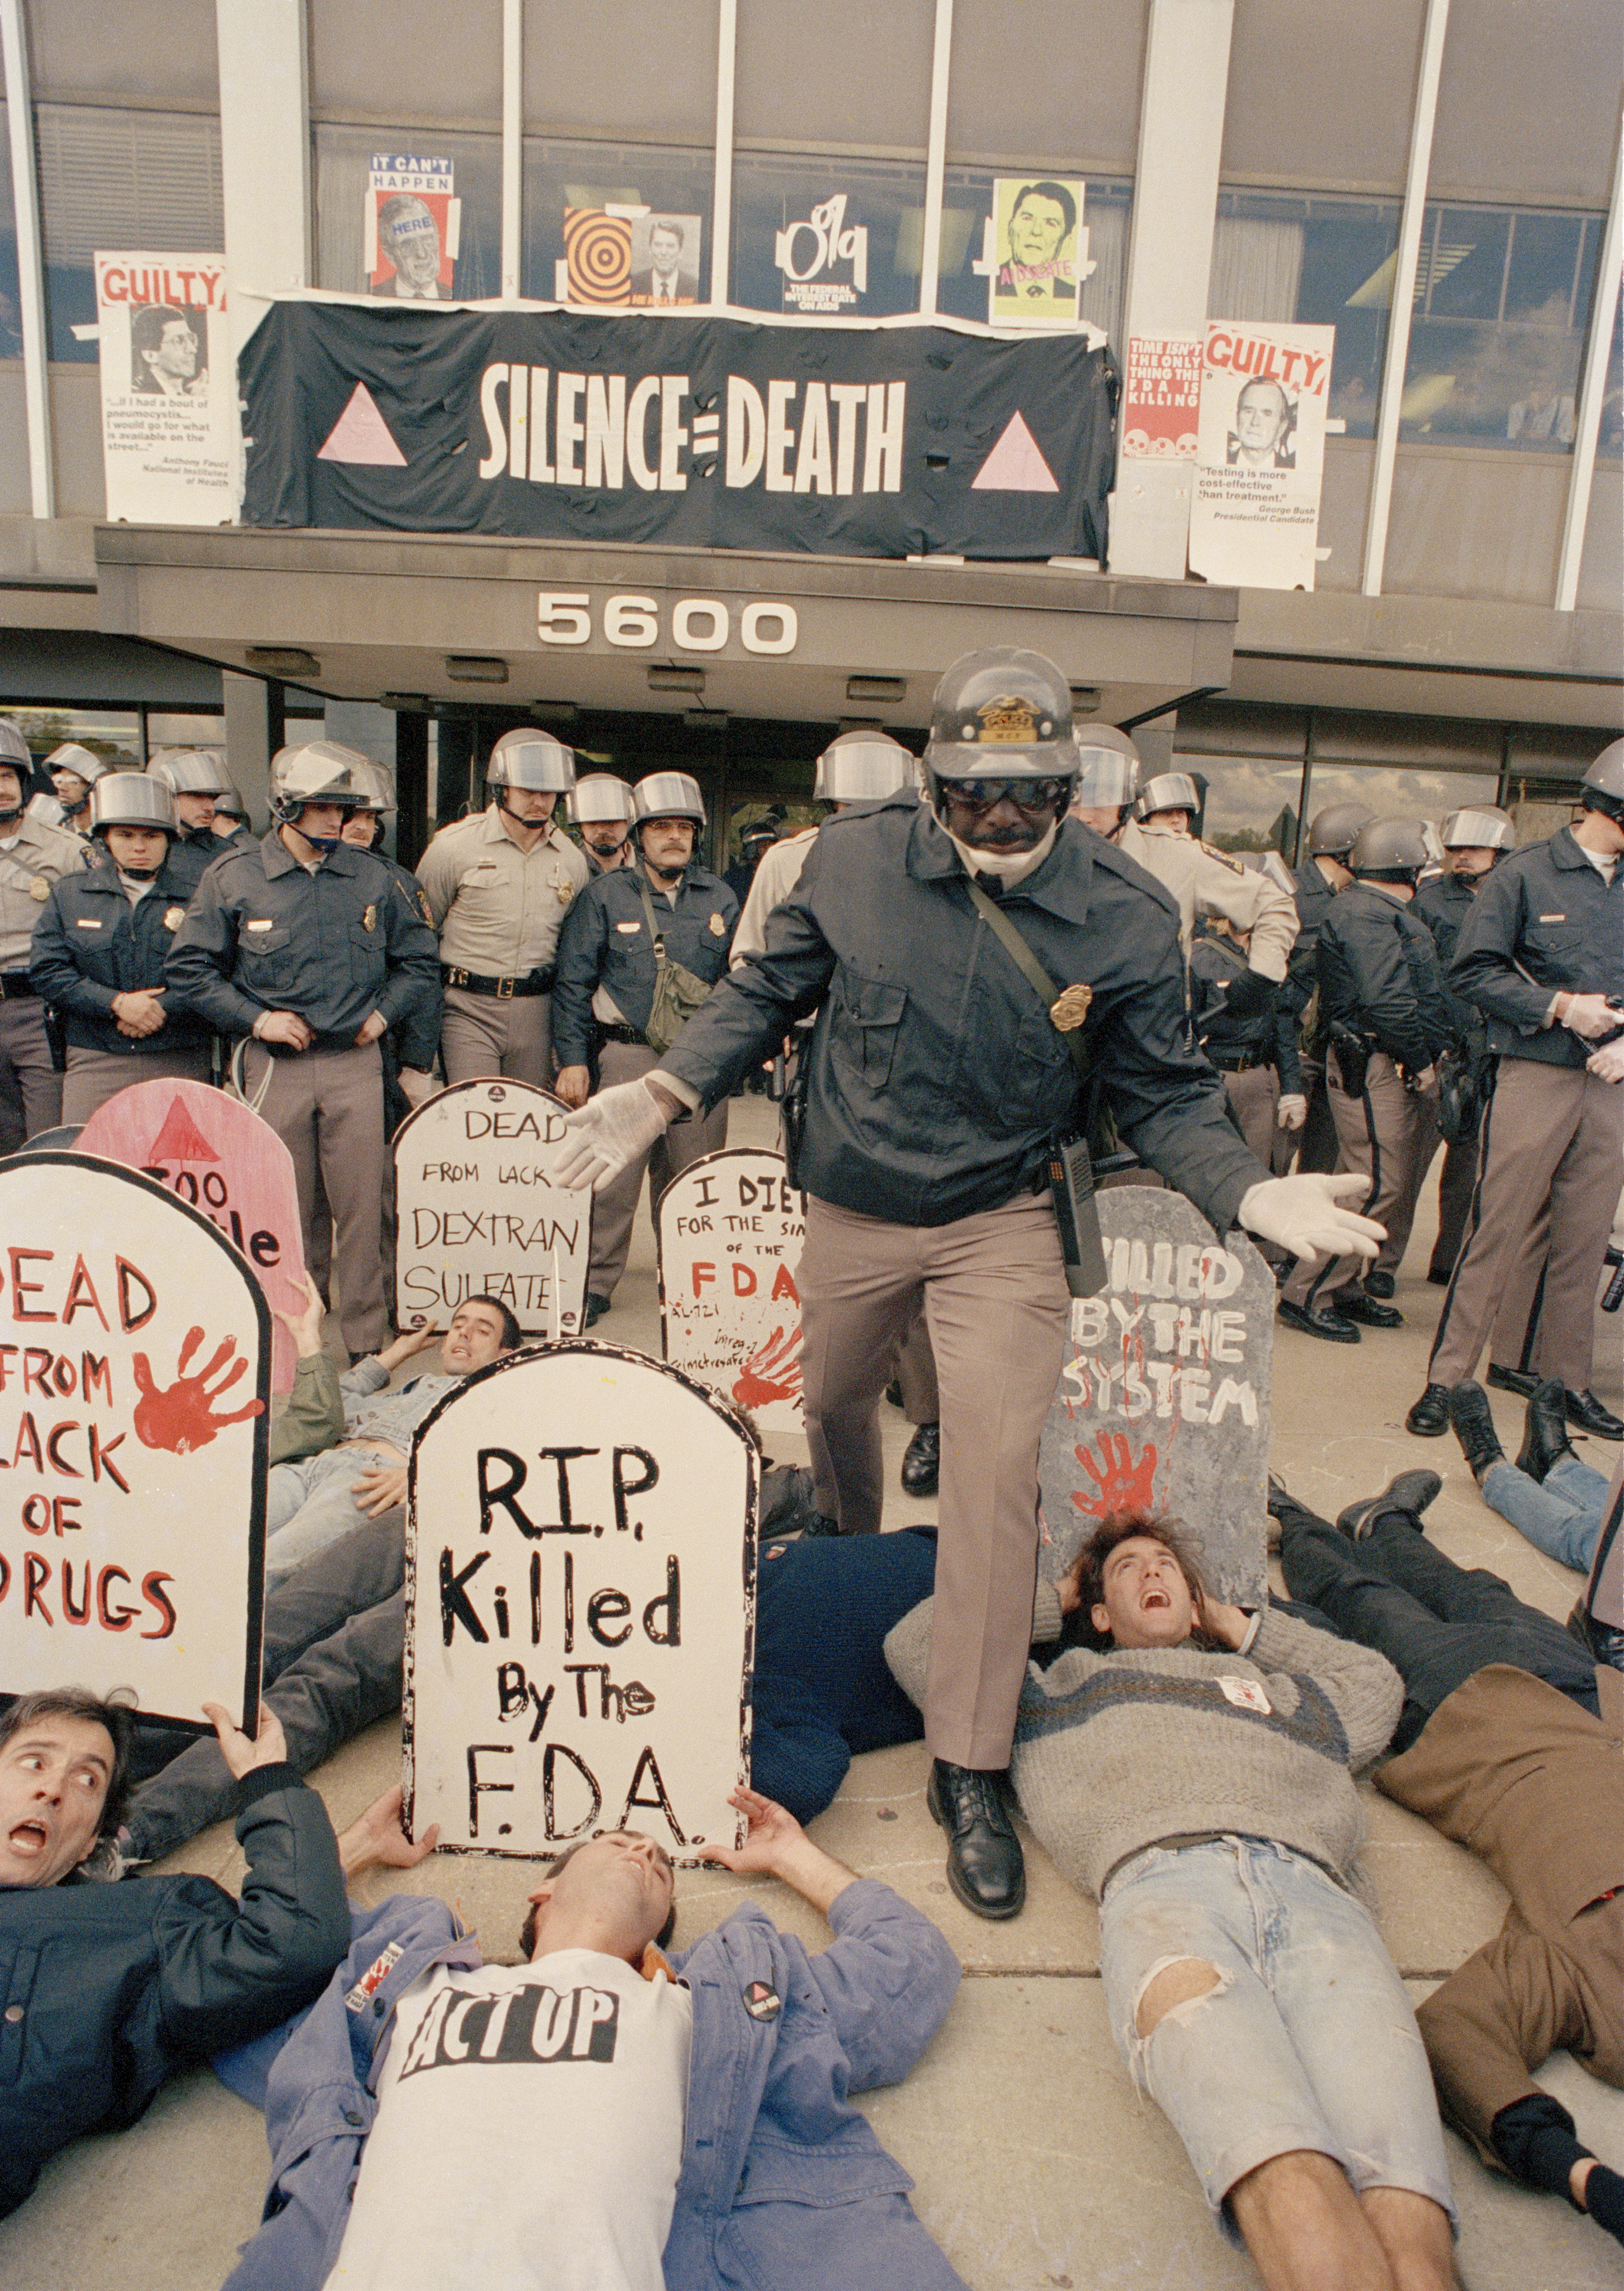 ACT UP demonstrators who were angry at the federal government's response to the AIDS crisis effectively shut down the headquarters of the Food and Drug Administration in Rockville, Md., on Oct. 11, 1988.     (J. Scott Applewhite/AP)